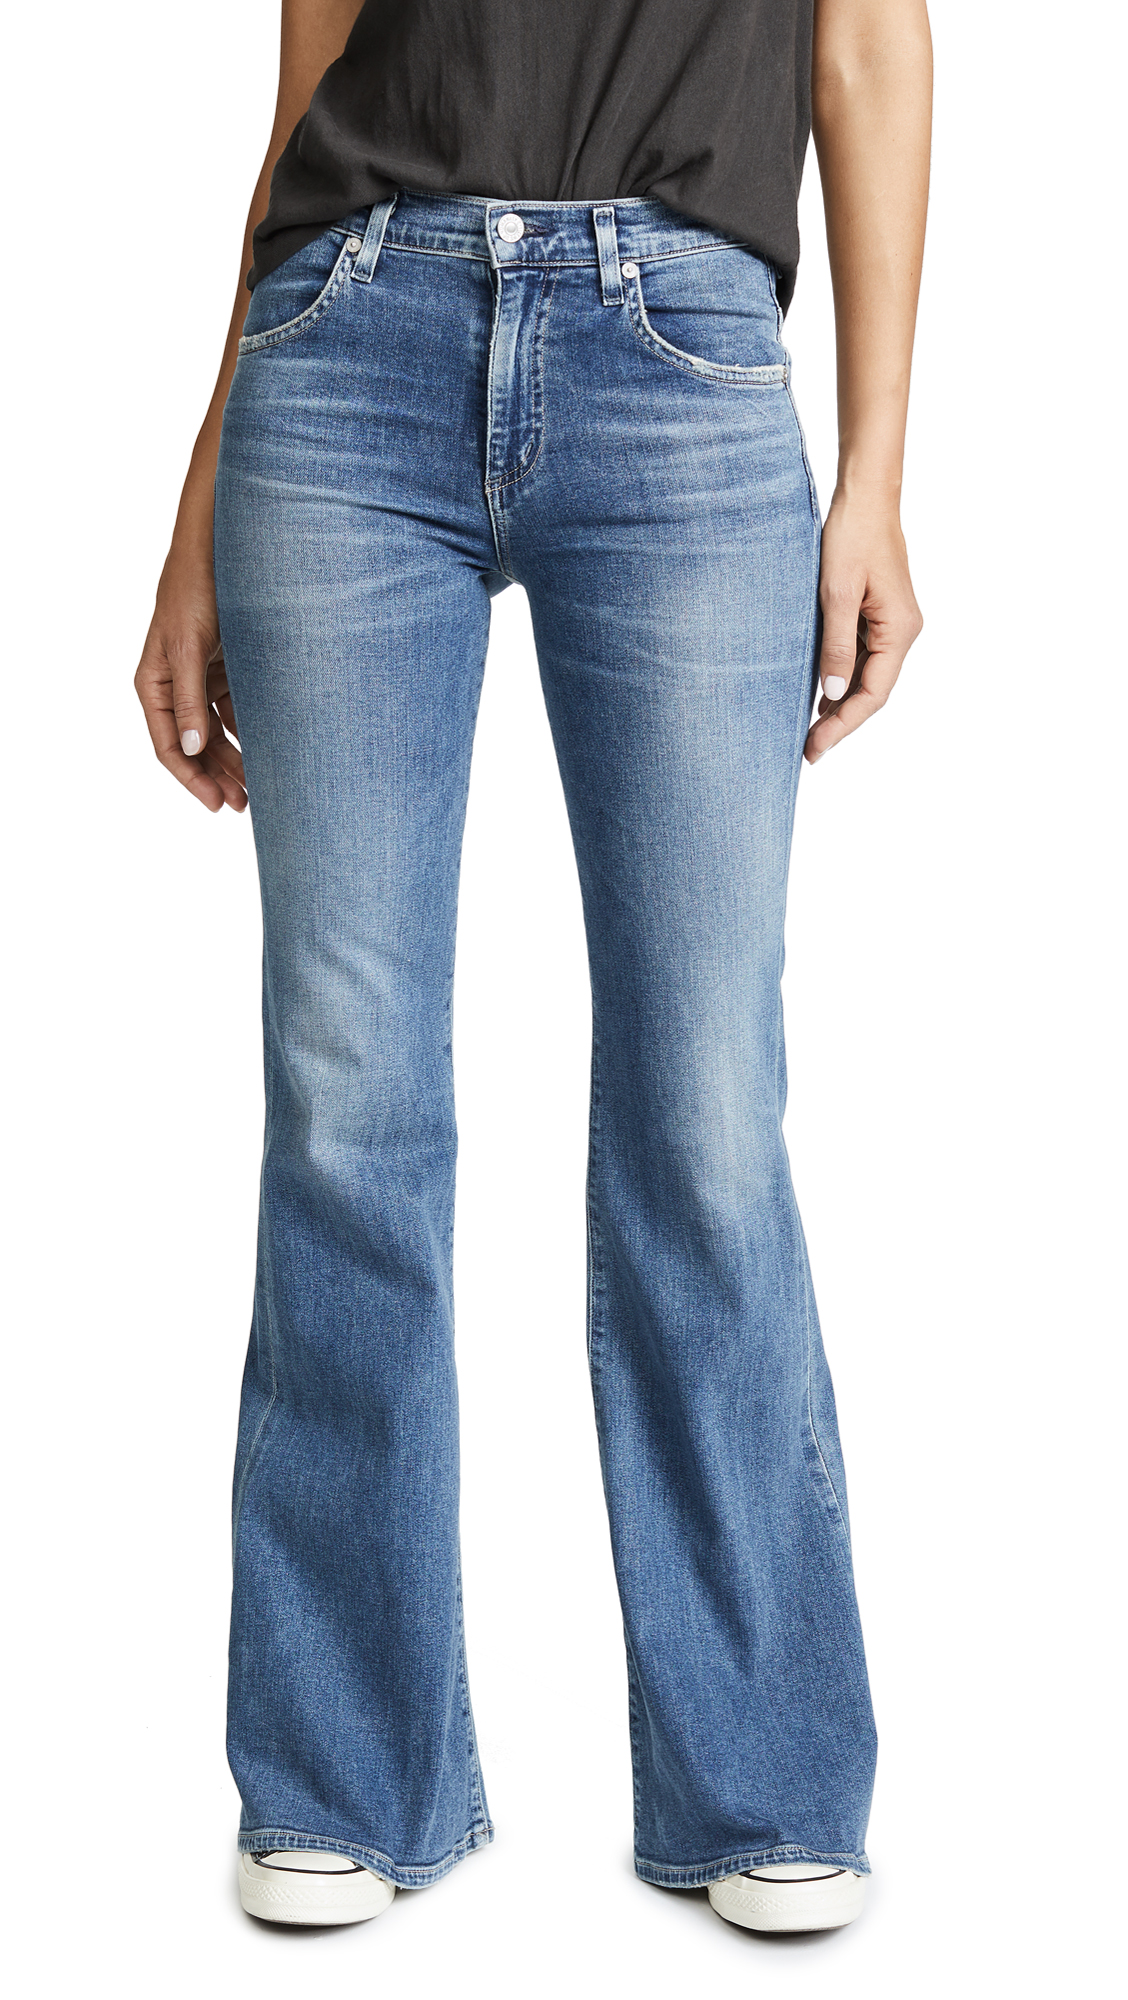 Chloe Mid Rise Super Flare Jeans